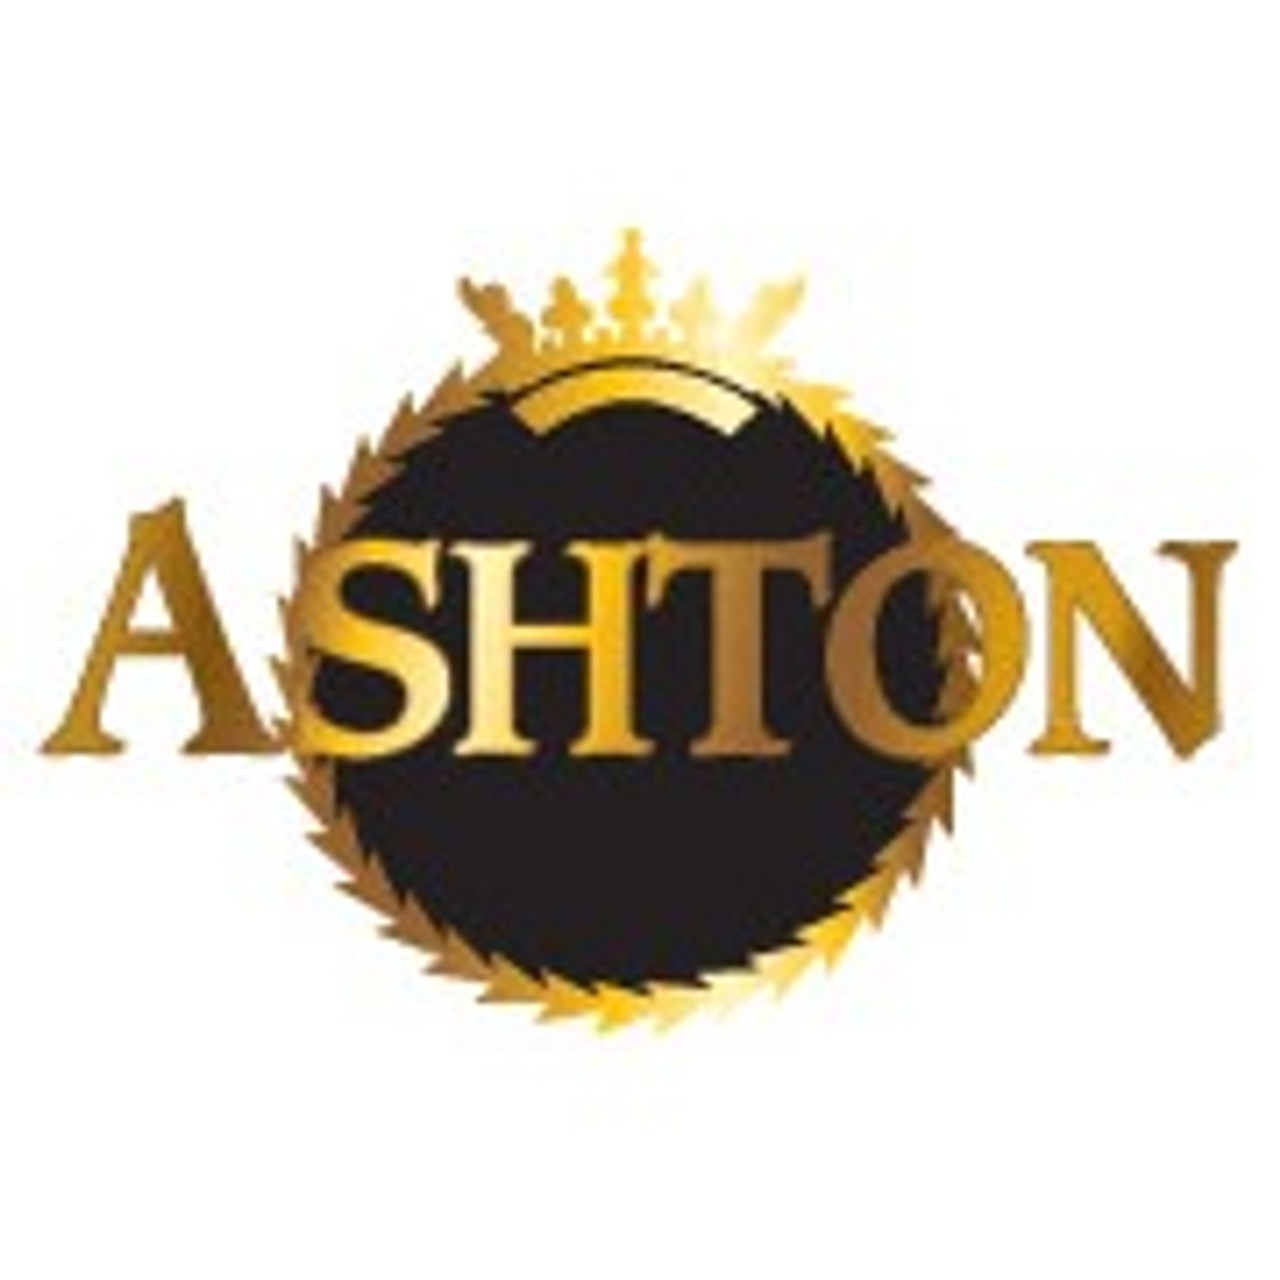 Ashton Mini Cigarillos Cigars - 3 1/4 x 20 (10 Packs of 10)